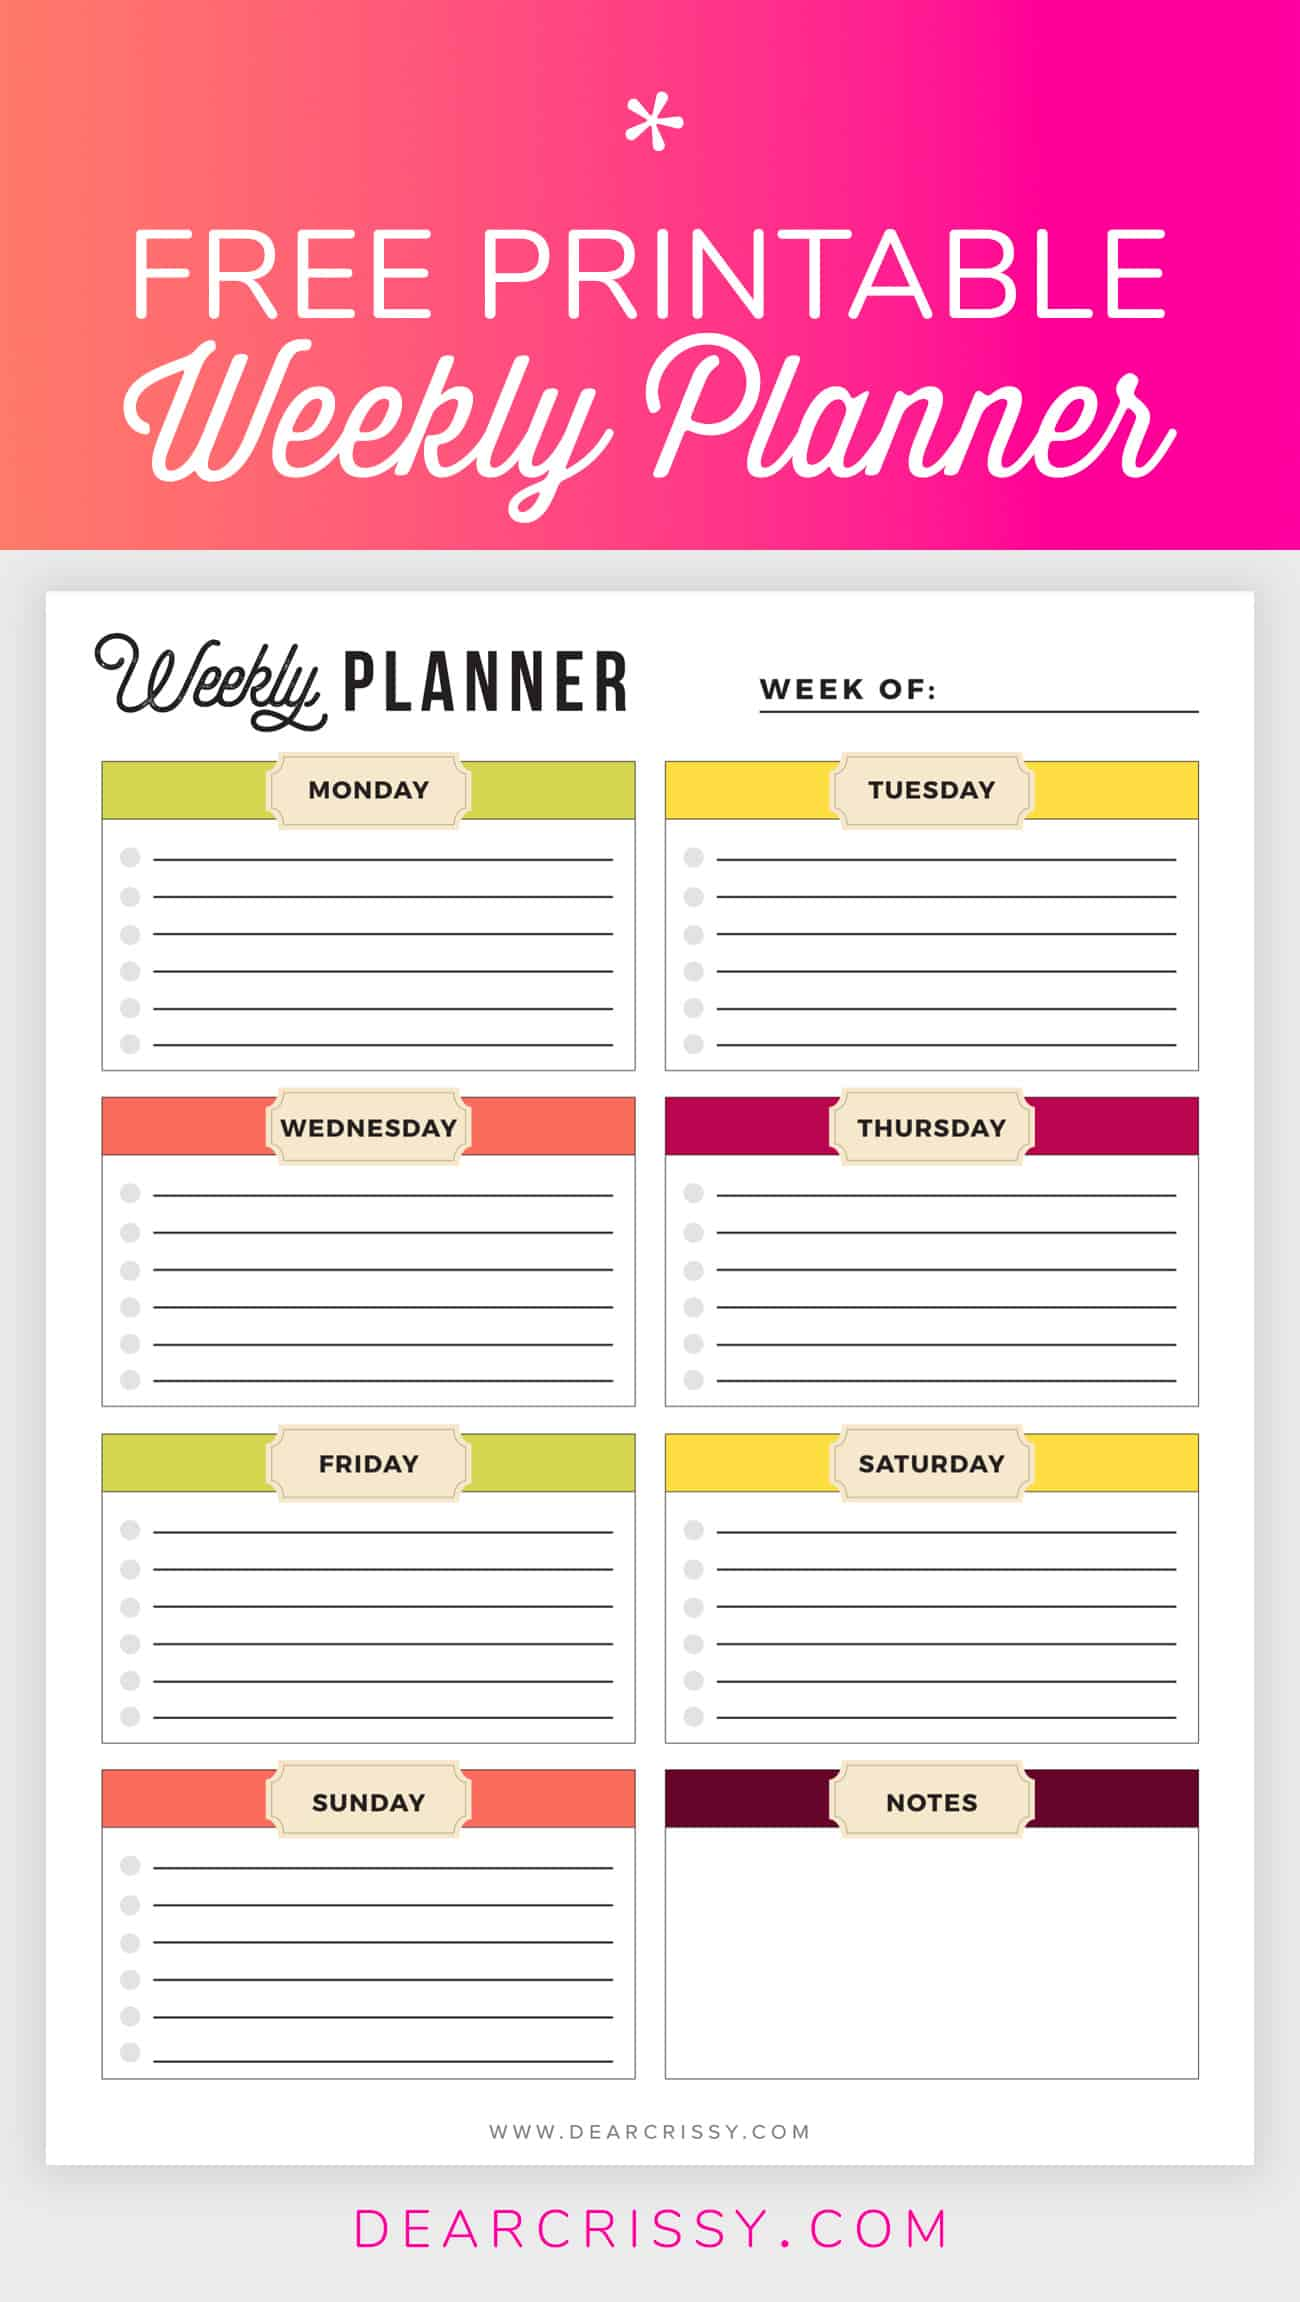 11 Free Printable Planners To Help Get Your Life Together